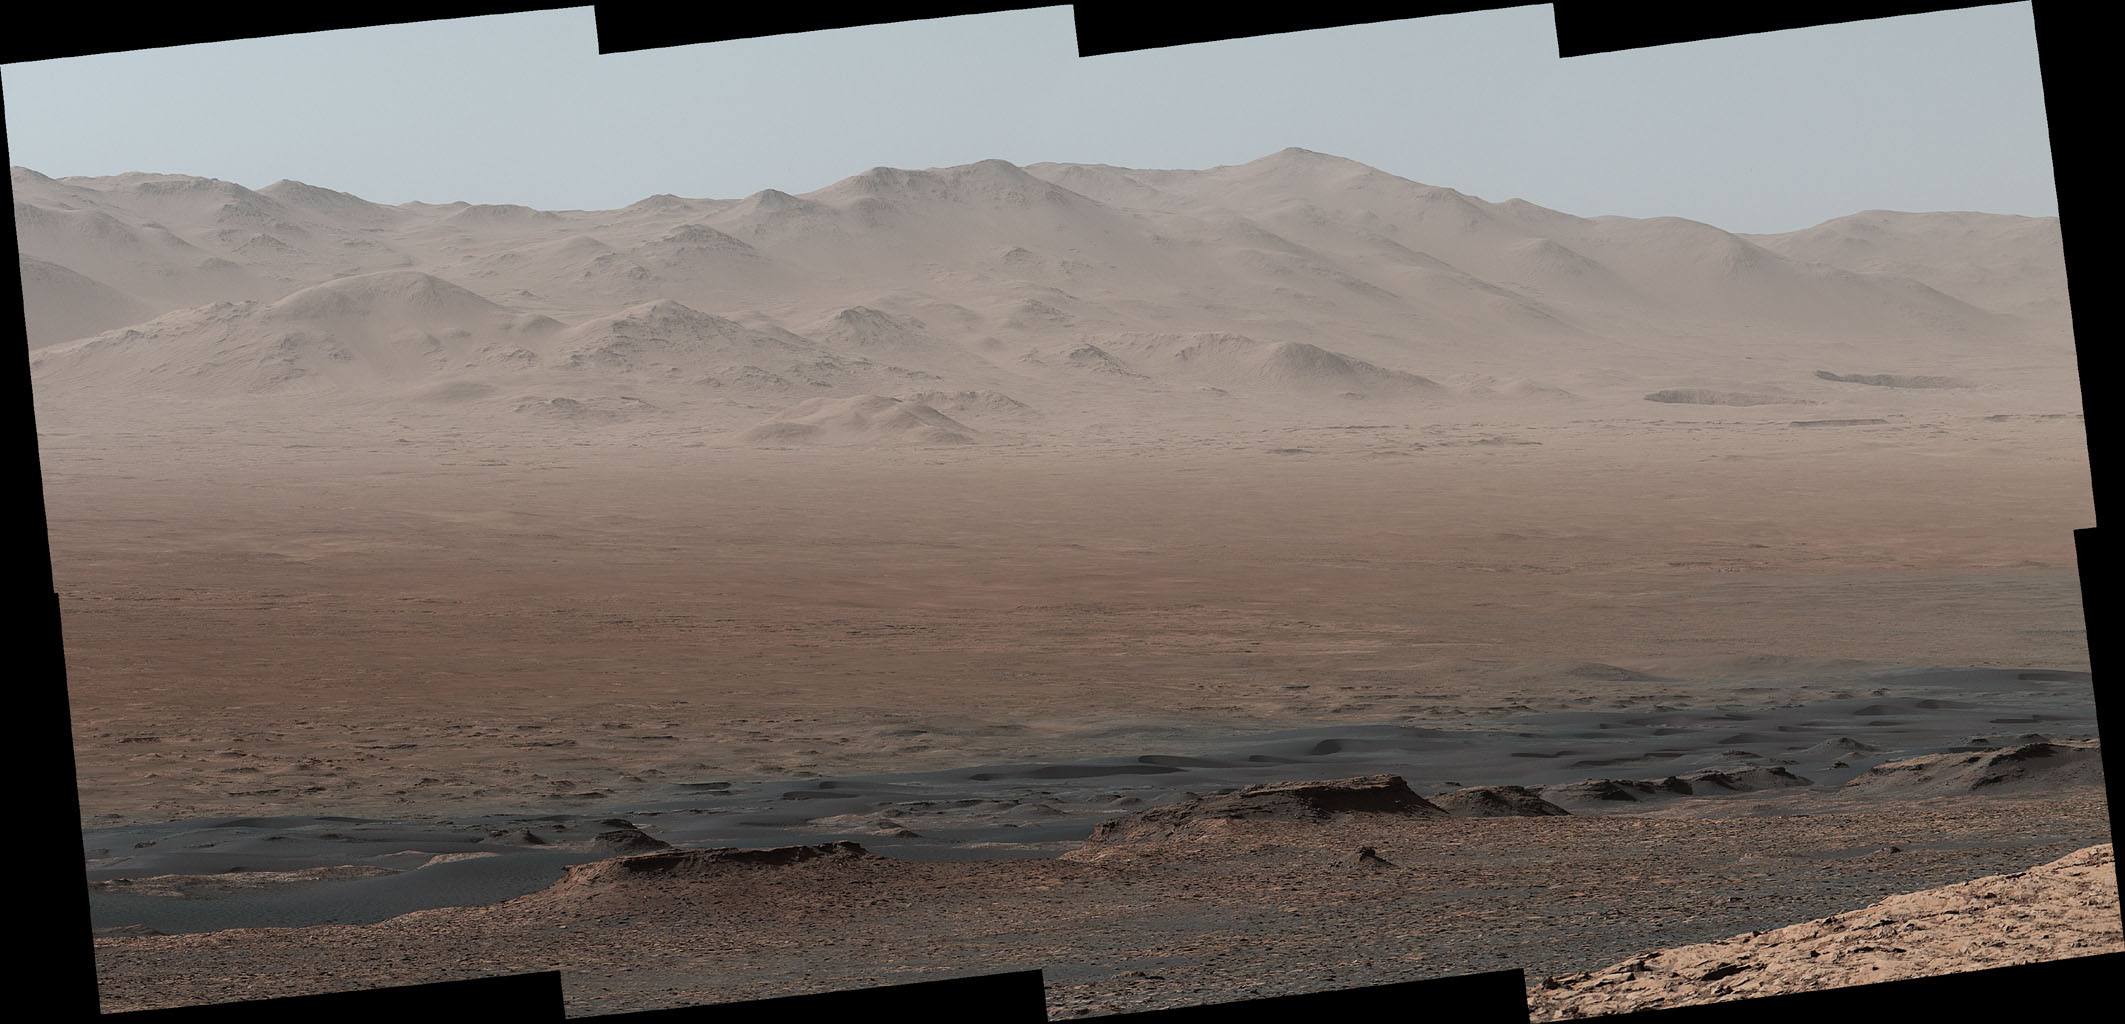 A vantage point on 'Vera Rubin Ridge' provided NASA's Curiosity Mars rover this detailed look back over the area where it began its mission inside Gale Crater, plus more-distant features of the crater.